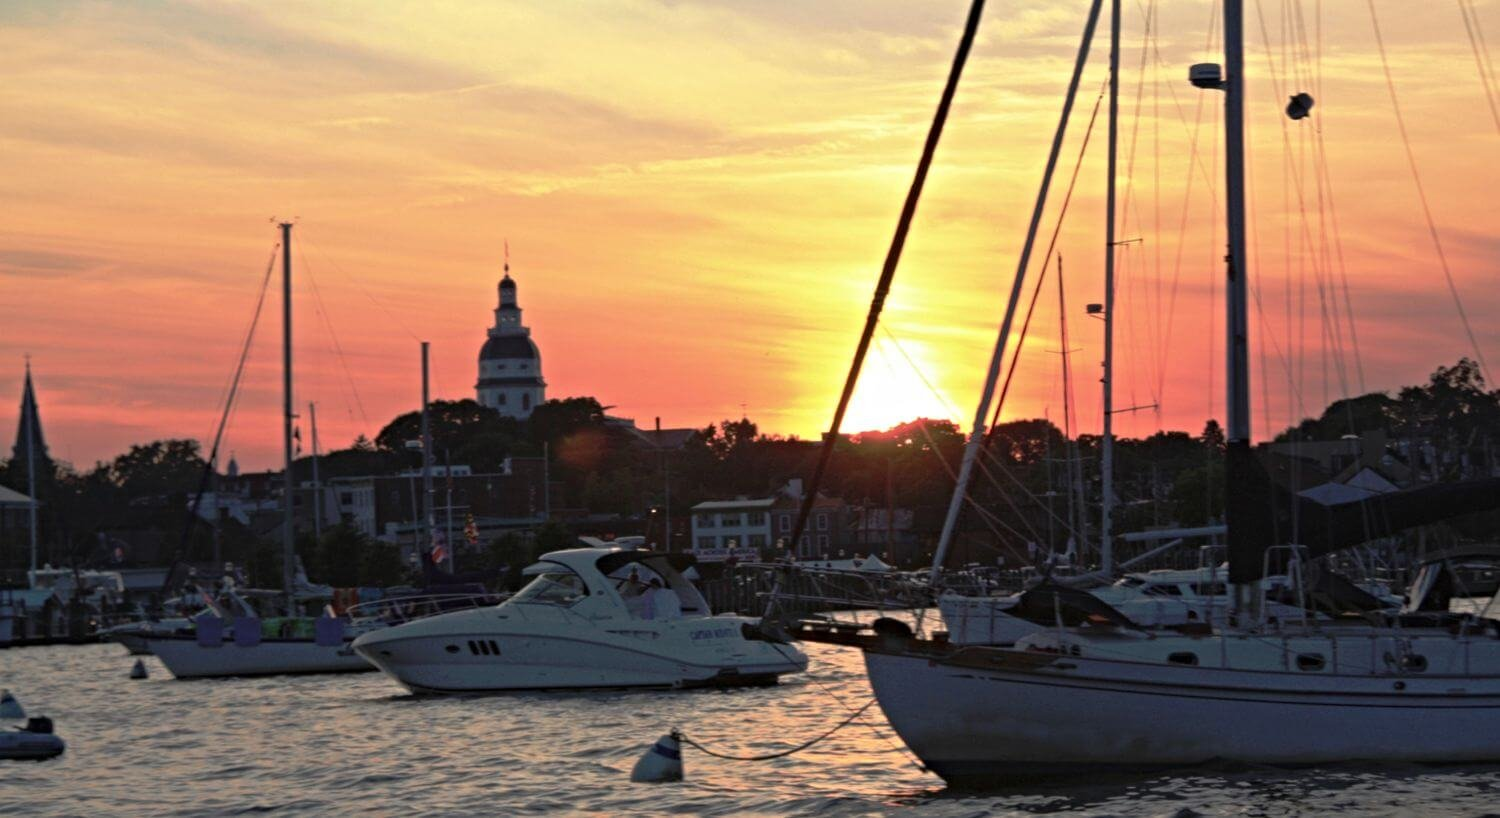 Yachts and sailboats in the harbor at sunset